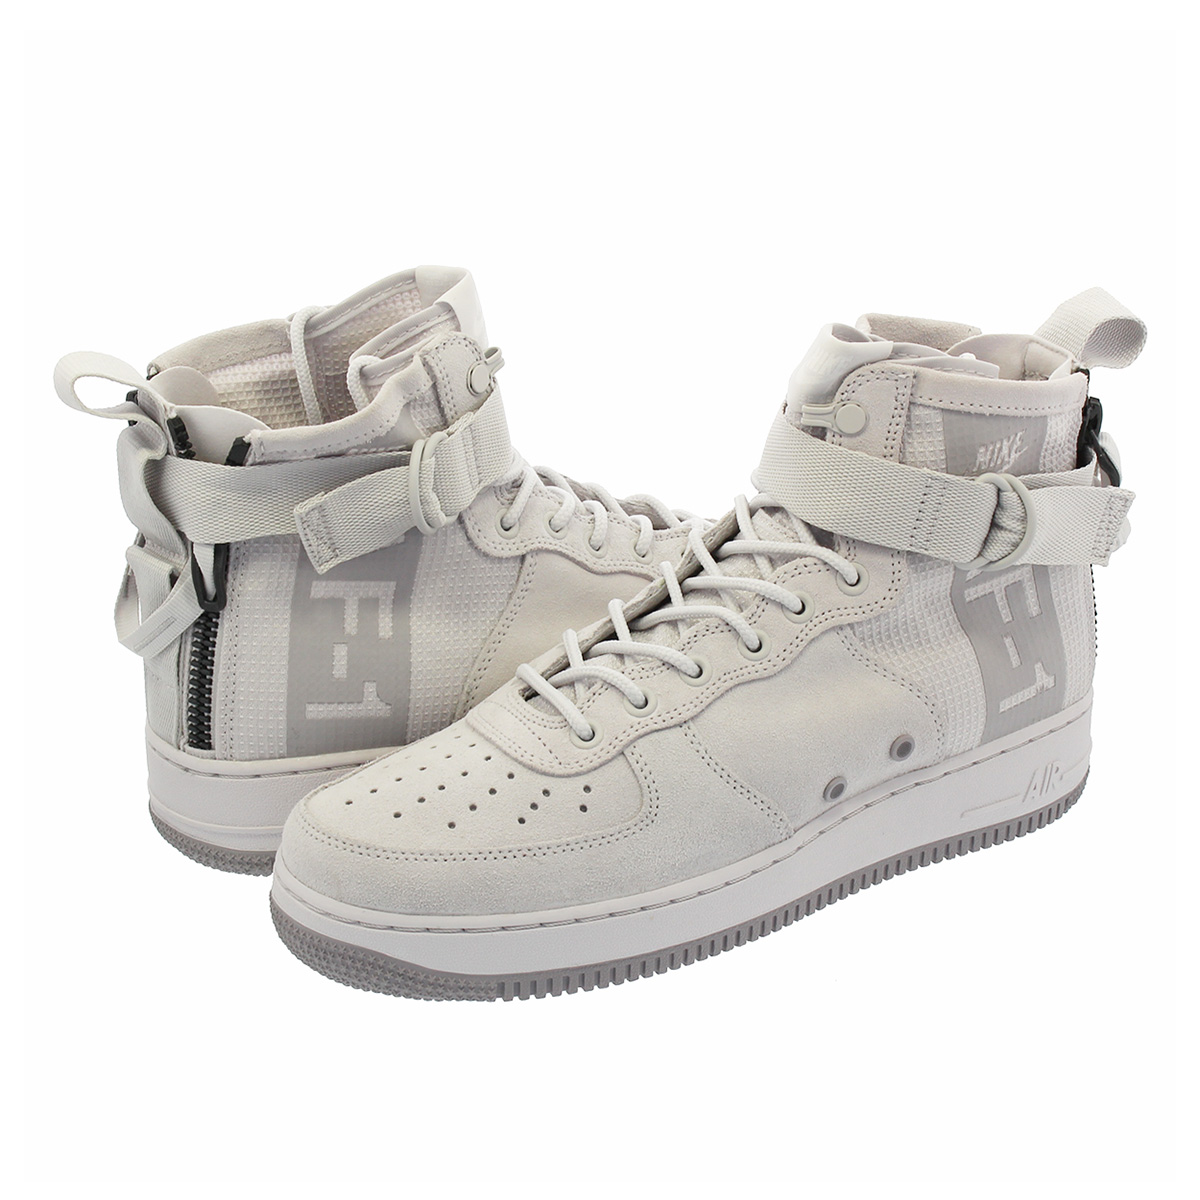 NIKE SPECIAL FIELD AIR FORCE 1 MID SUEDE 【SF AF-1】 ナイキ スペシャル フィールド エアフォース 1 ミッド スエード VAST GREY/ATMOSPHERE GREY